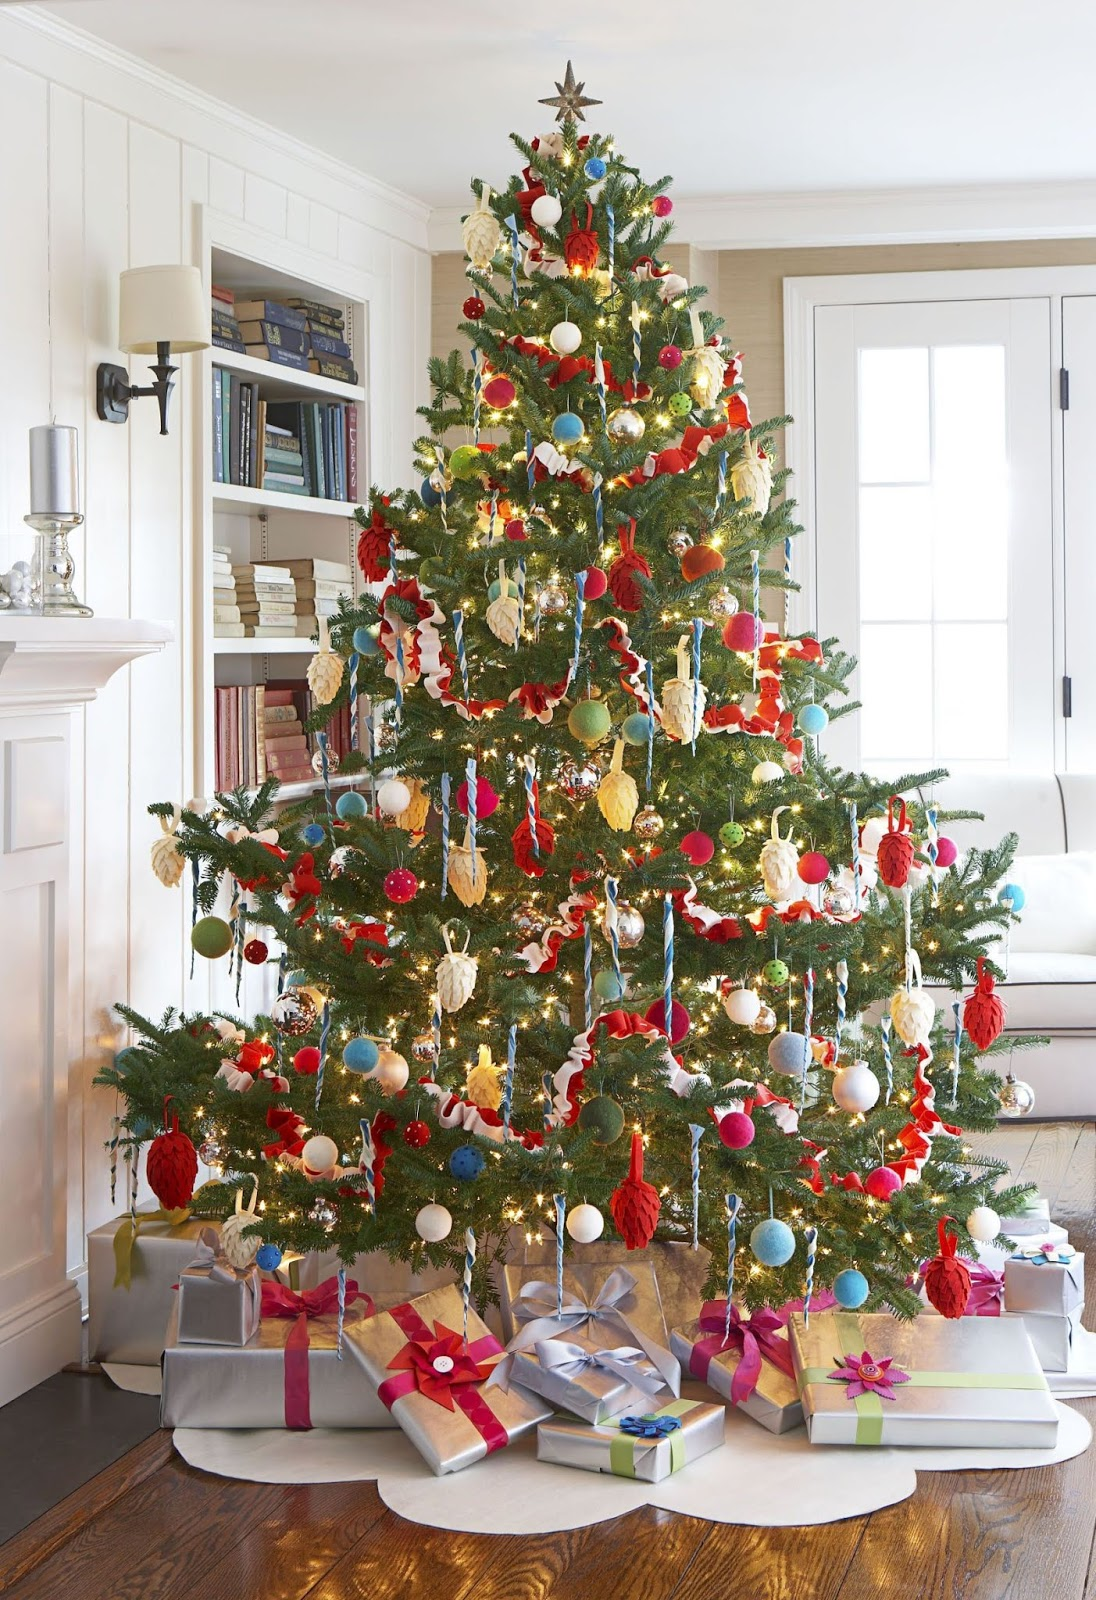 Christmas Tree Ideas That'll Really Make a Statement This Holiday